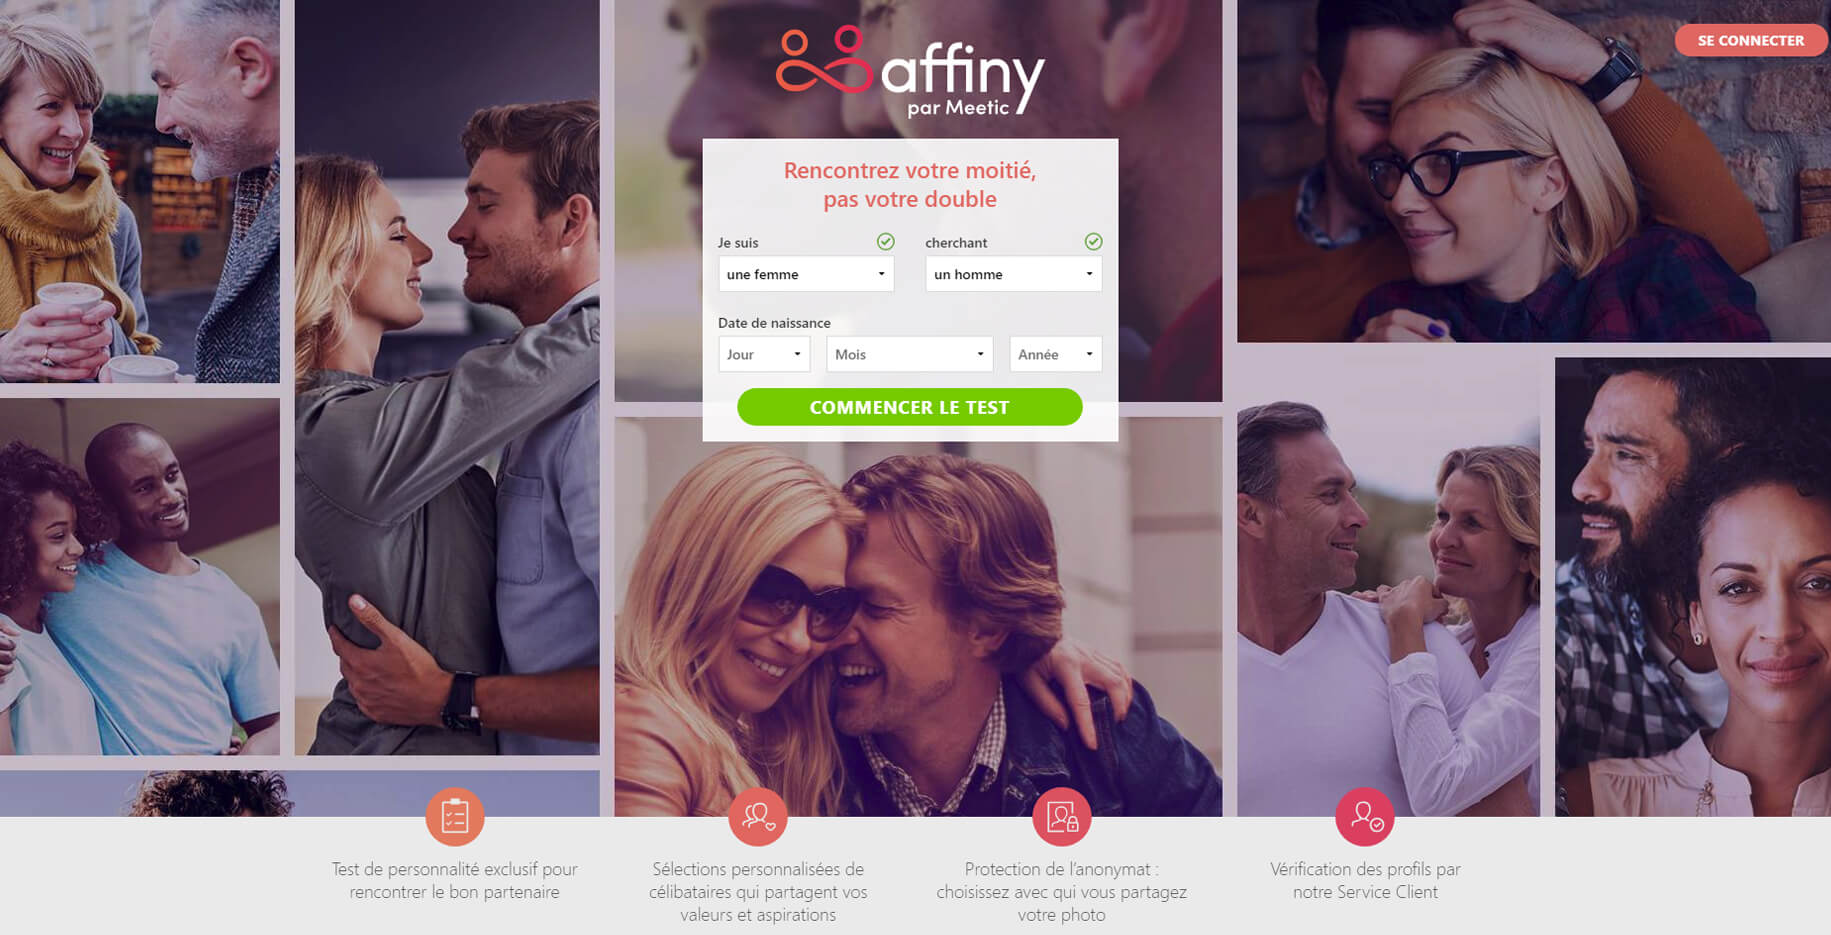 Sites de rencontre: Affiny par Meetic